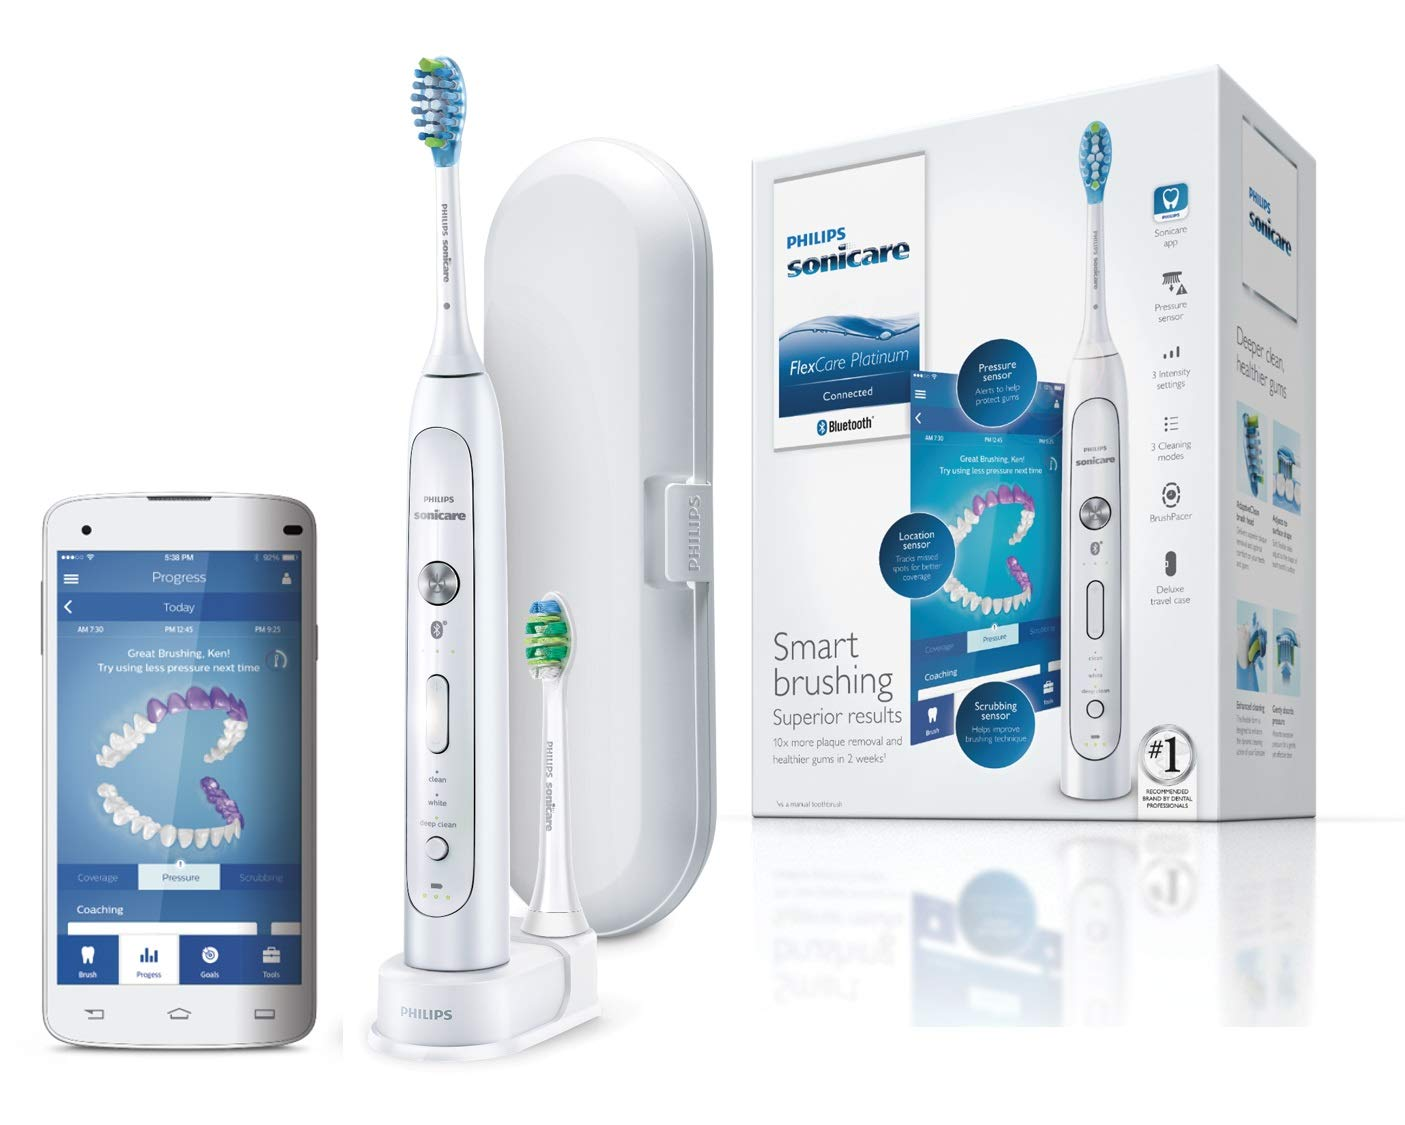 Philips Sonicare FlexCare Platinum HX9192/01